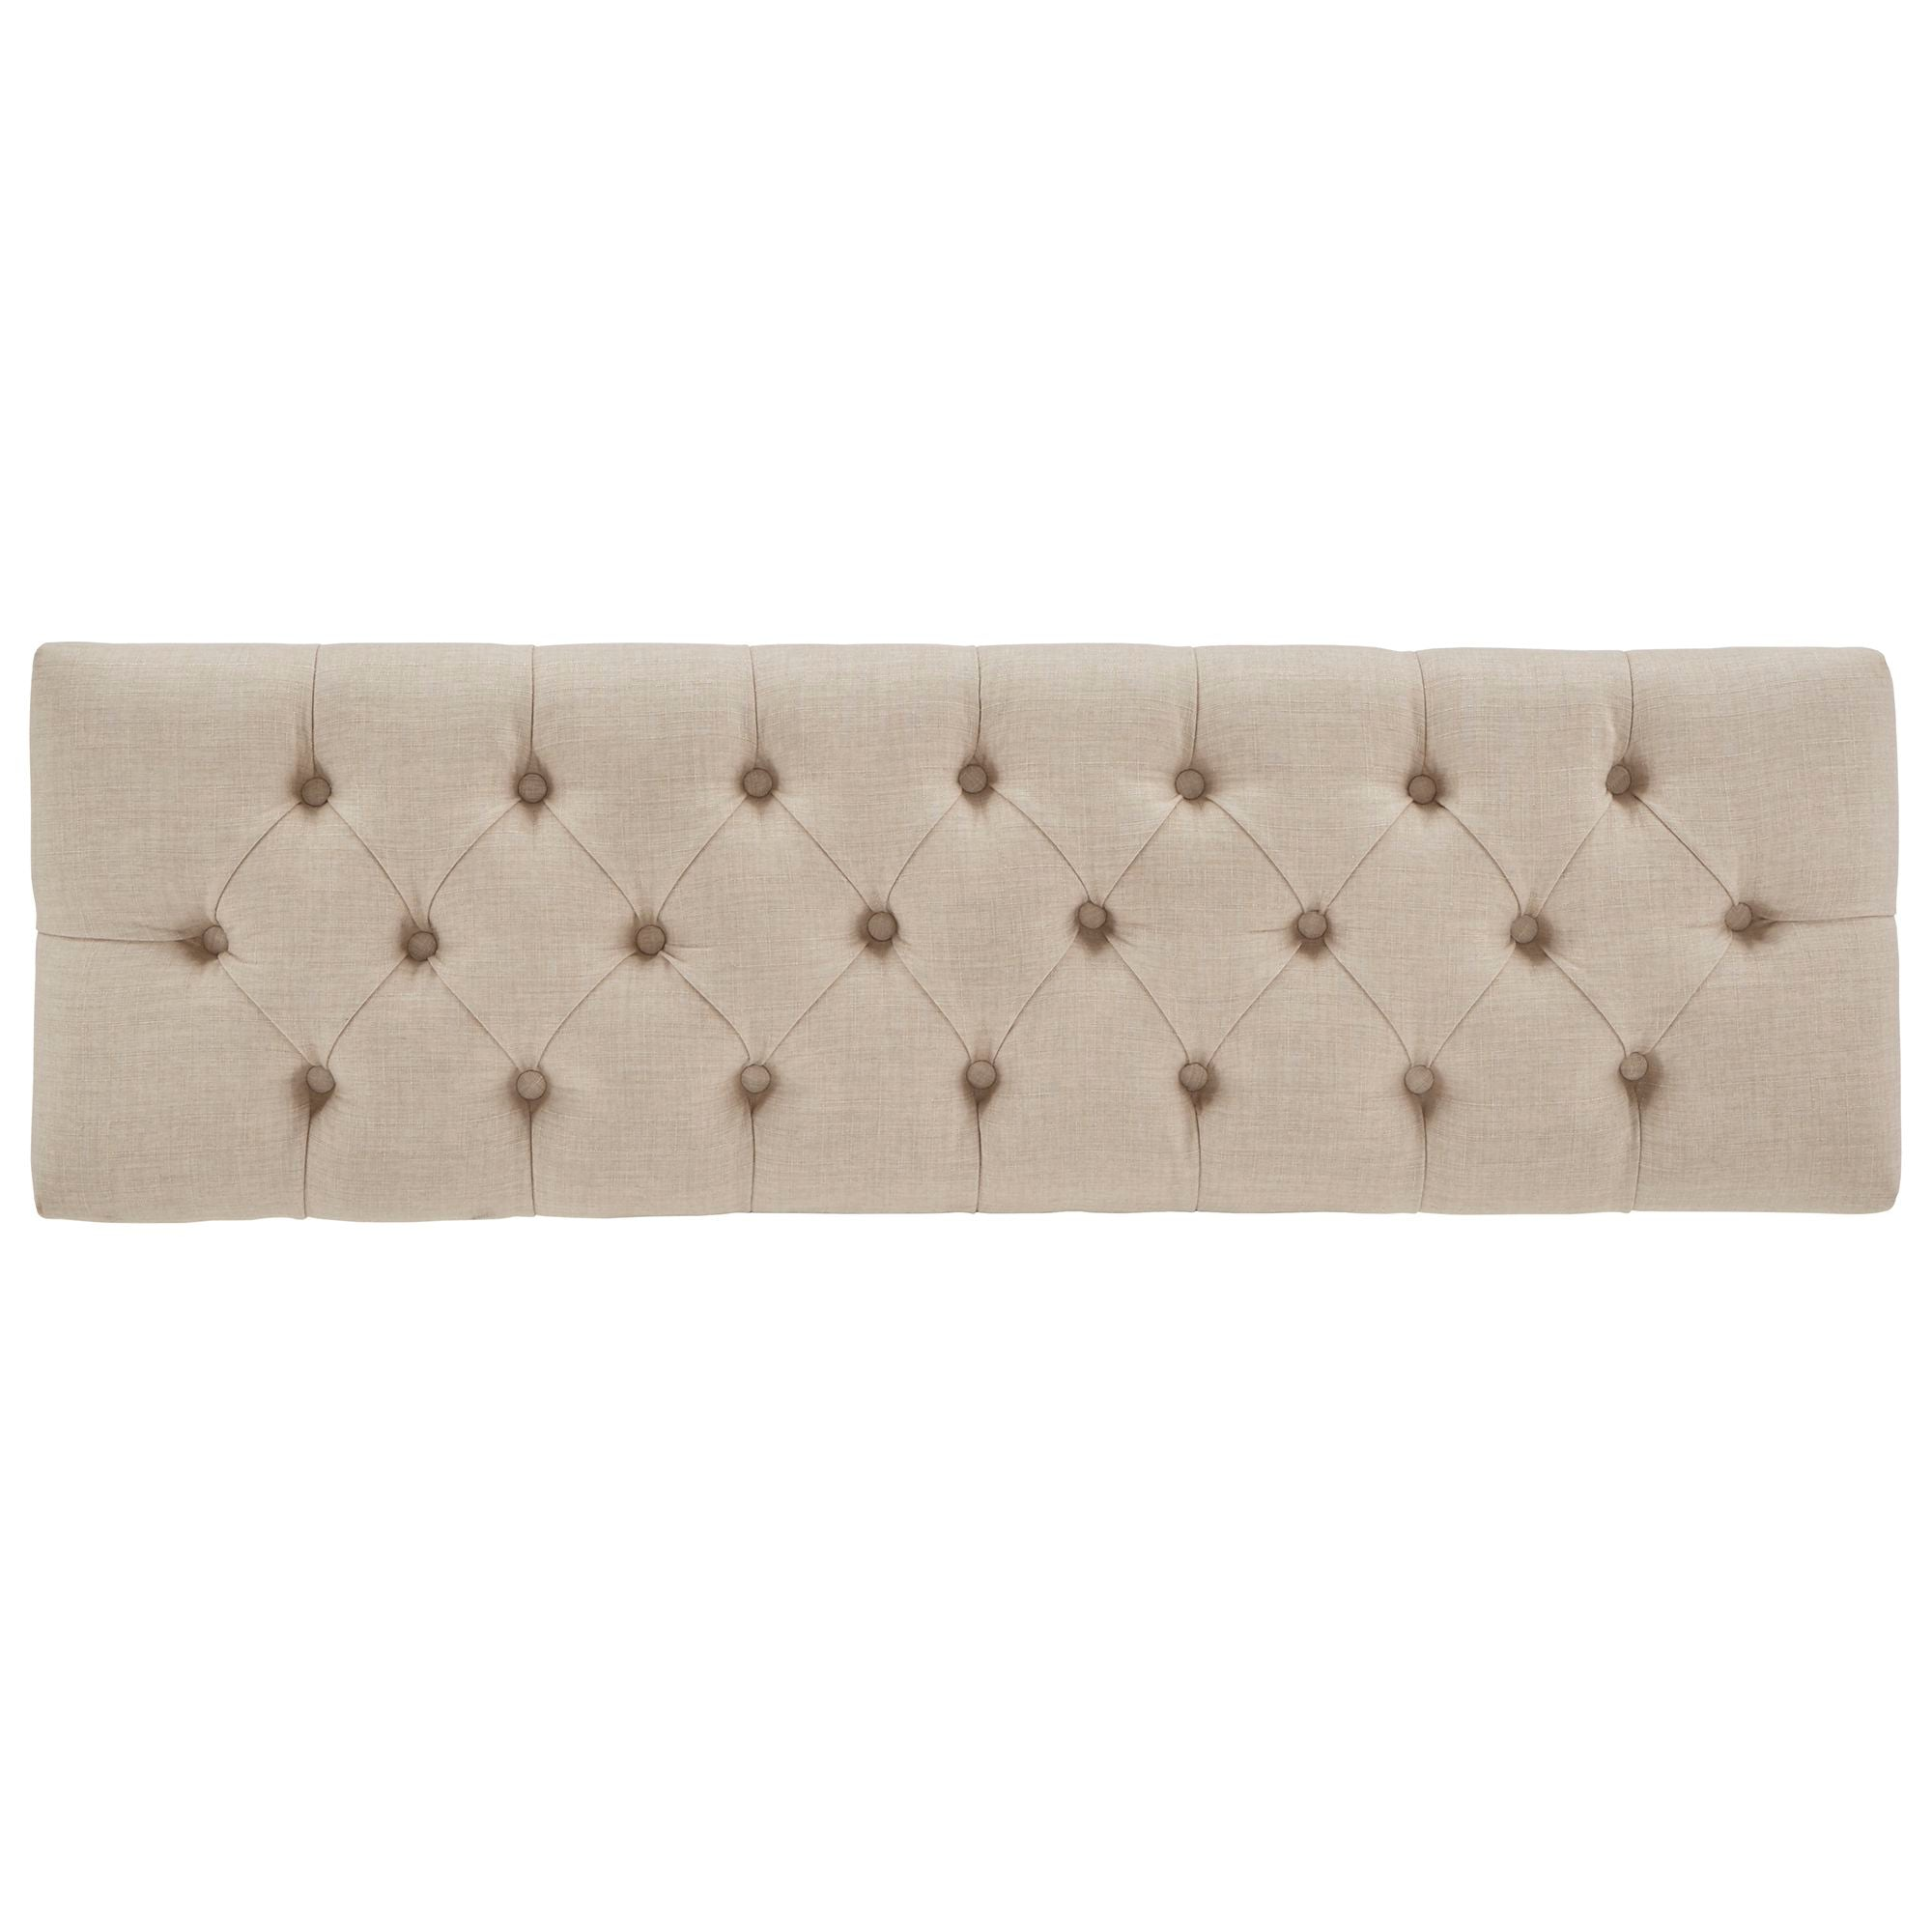 Premium Tufted Reclaimed 52-inch Upholstered Bench - Beige Linen